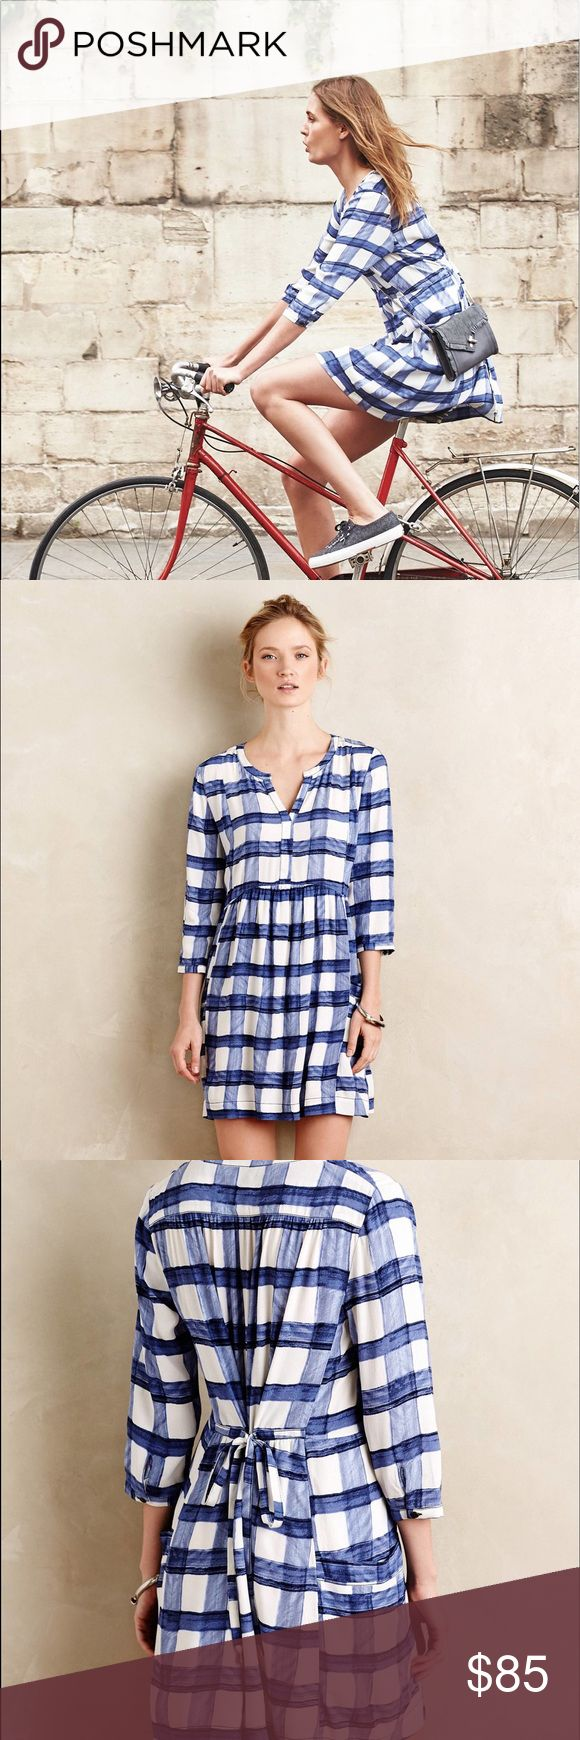 Anthropologie Maeve Blue and White Gingham Dress 'Devery Shirtdress in Blue' by Maeve. Fantastic condition, gently worn and washed once. Hangs beautifully, purchased for my mother but she just doesn't think it's her style. So fun for summer and fall! Anthropologie Dresses Long Sleeve